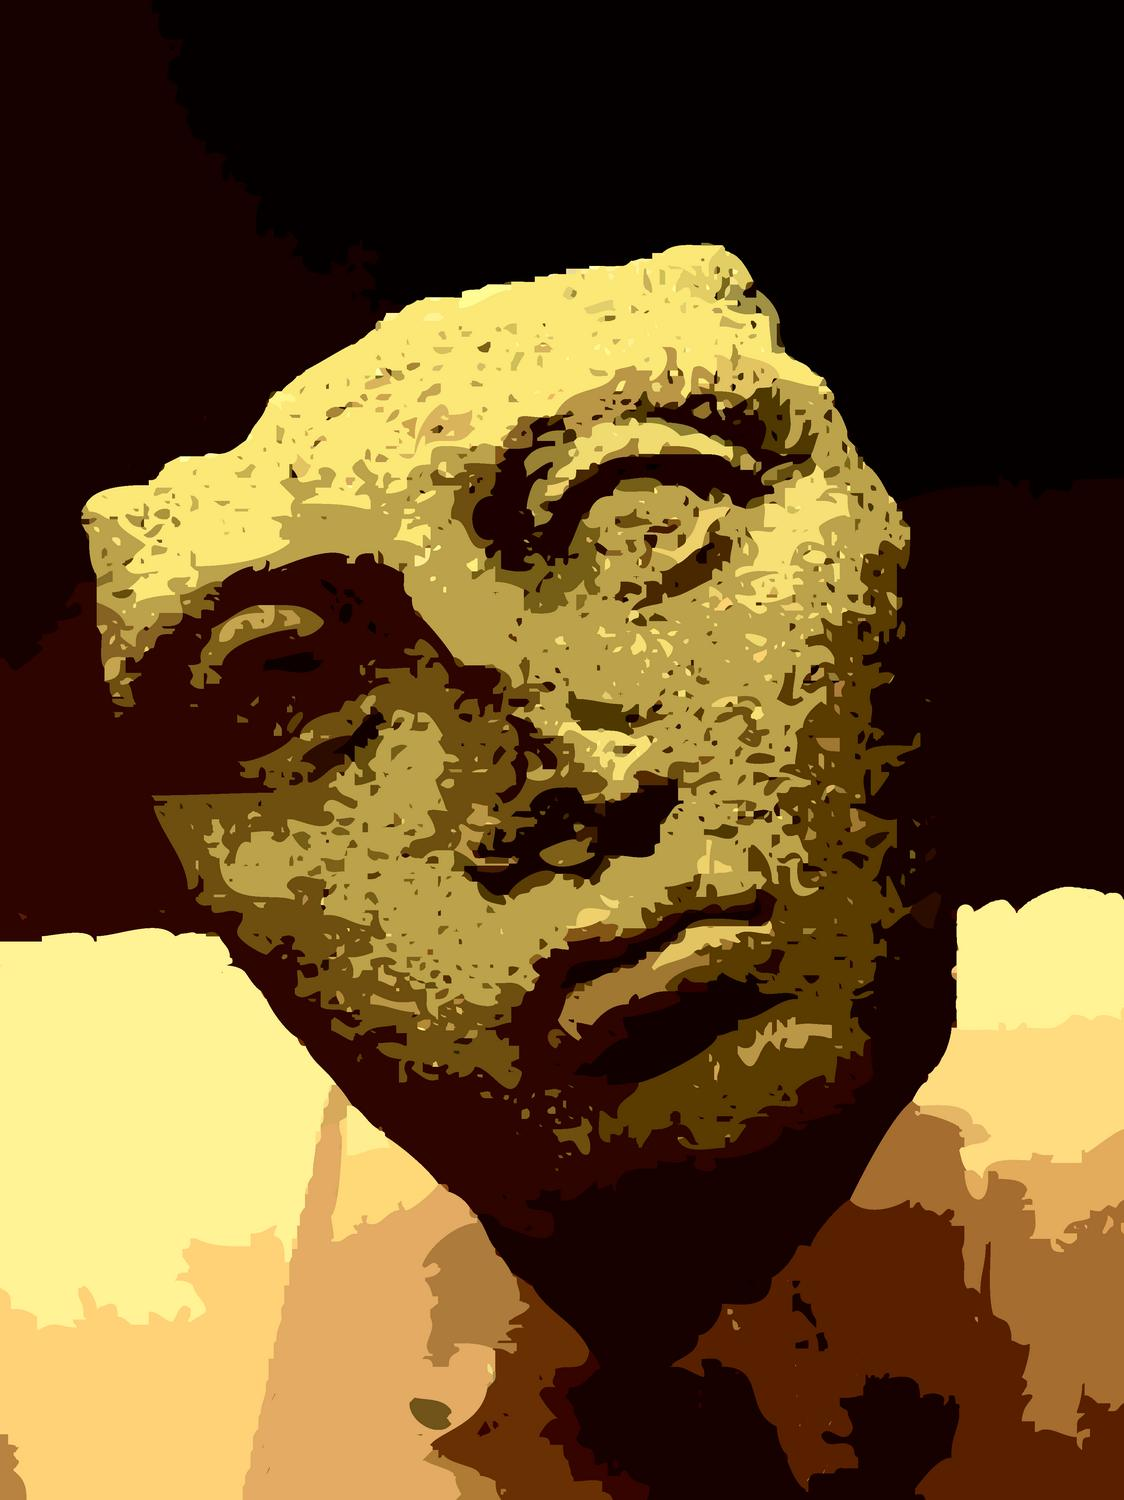 - An Etruscan face in Viterbo. - A trip to Rome - by Tony Karp - Rome - Vatican - Gubbio - Viterbo - Spoleto - - - art  - photography - by Tony Karp